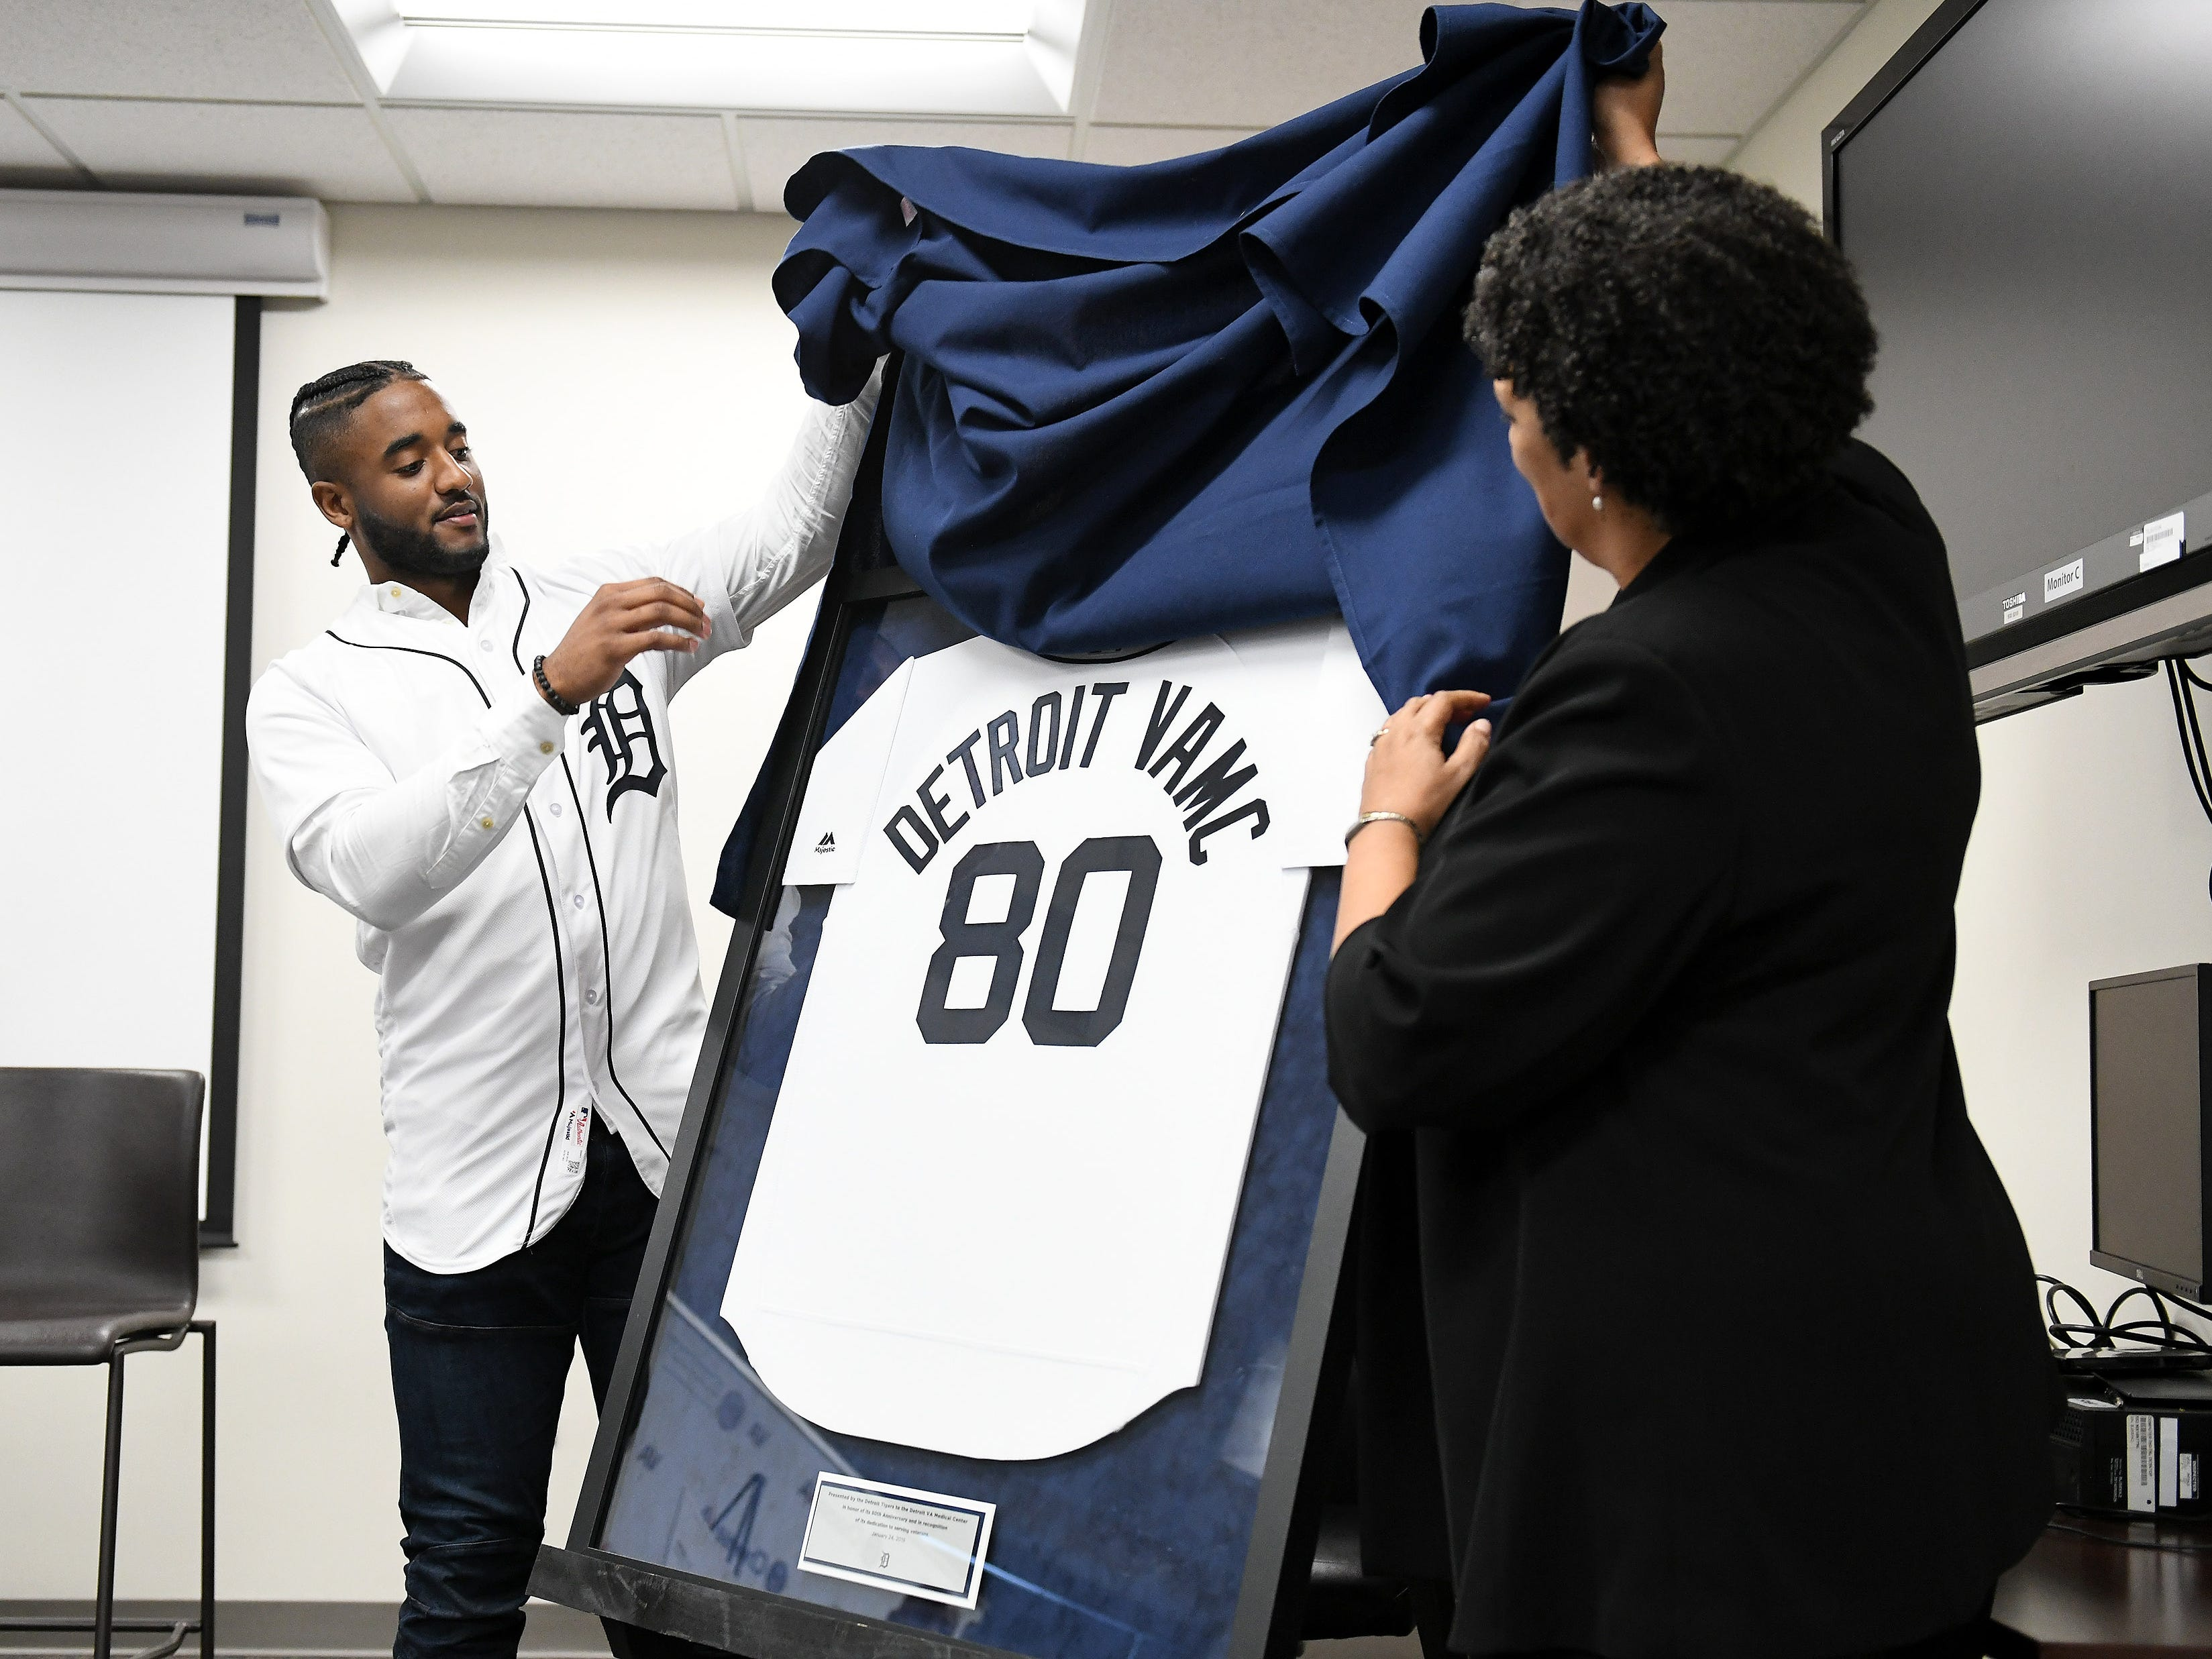 Tigers' Niko Goodrum, left, and John D. Dingell VA Medical Center director Pamela J. Reeves, MD, unveil a special jersey celebrating 80 years of service by the Detroit VA Medical Center during a stop on the 2019 Detroit Tigers Winter Caravan at the John D. Dingell VA Medical Center in Detroit on Jan. 24, 2019.